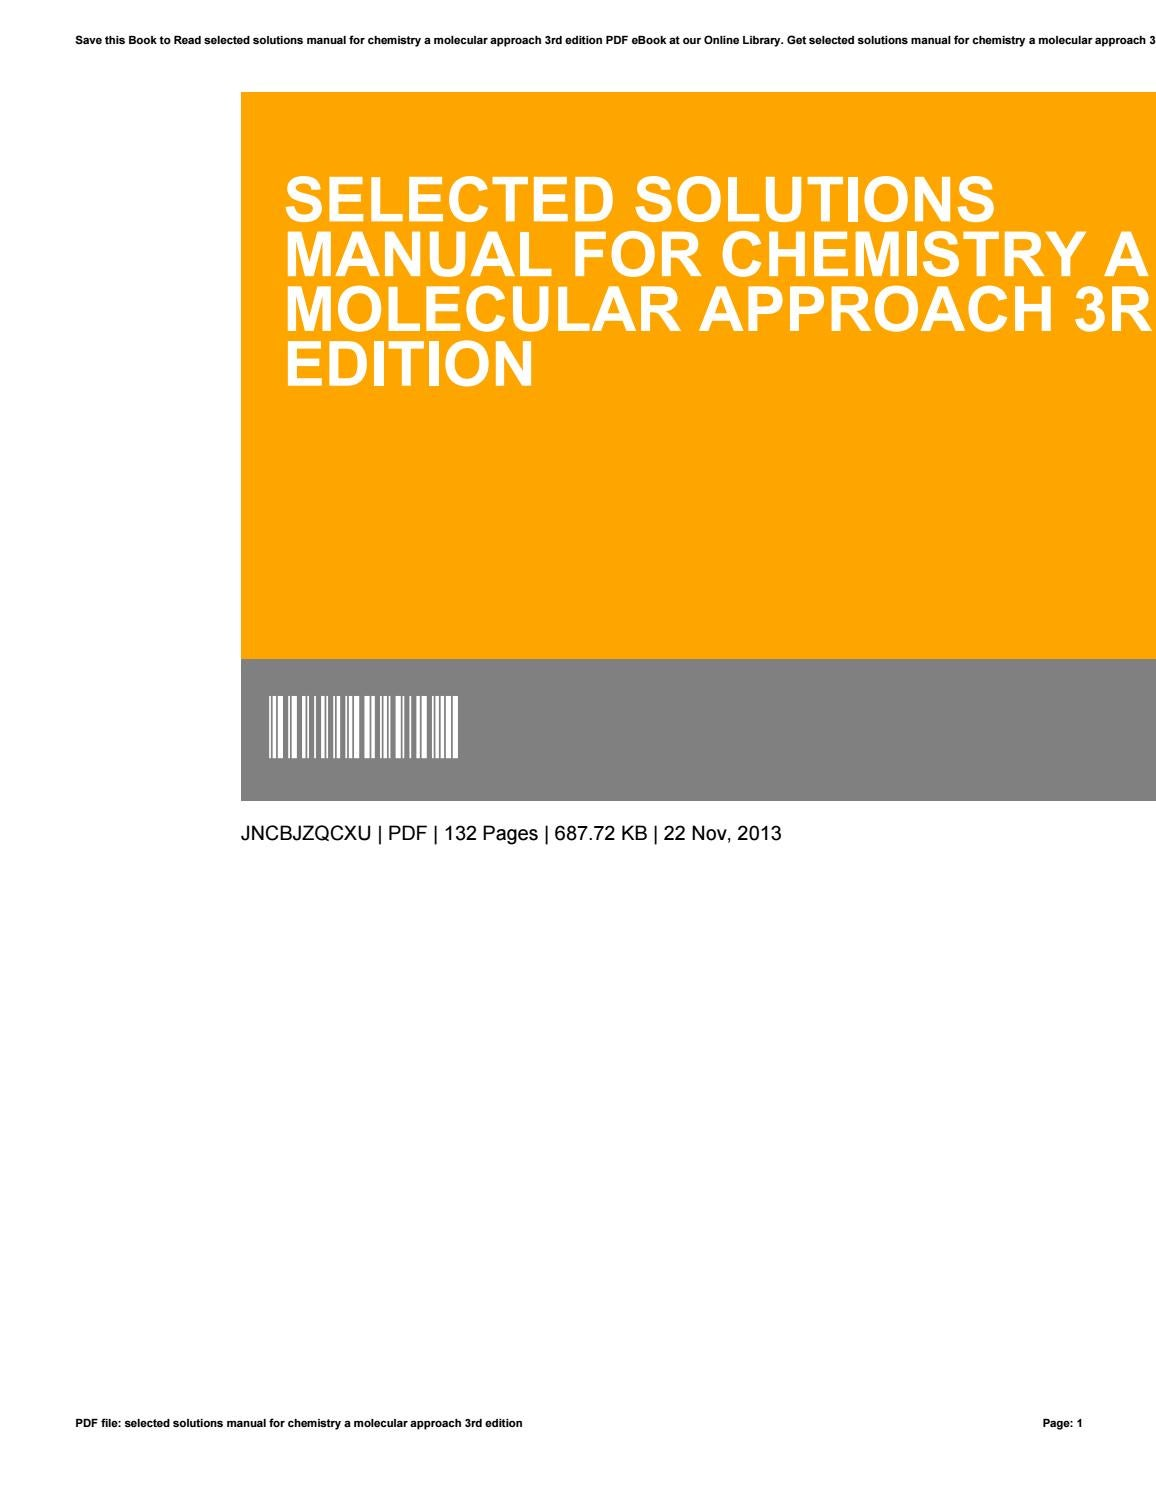 Selected solutions manual for chemistry a molecular approach 3rd edition by  minex-coin66 - issuu